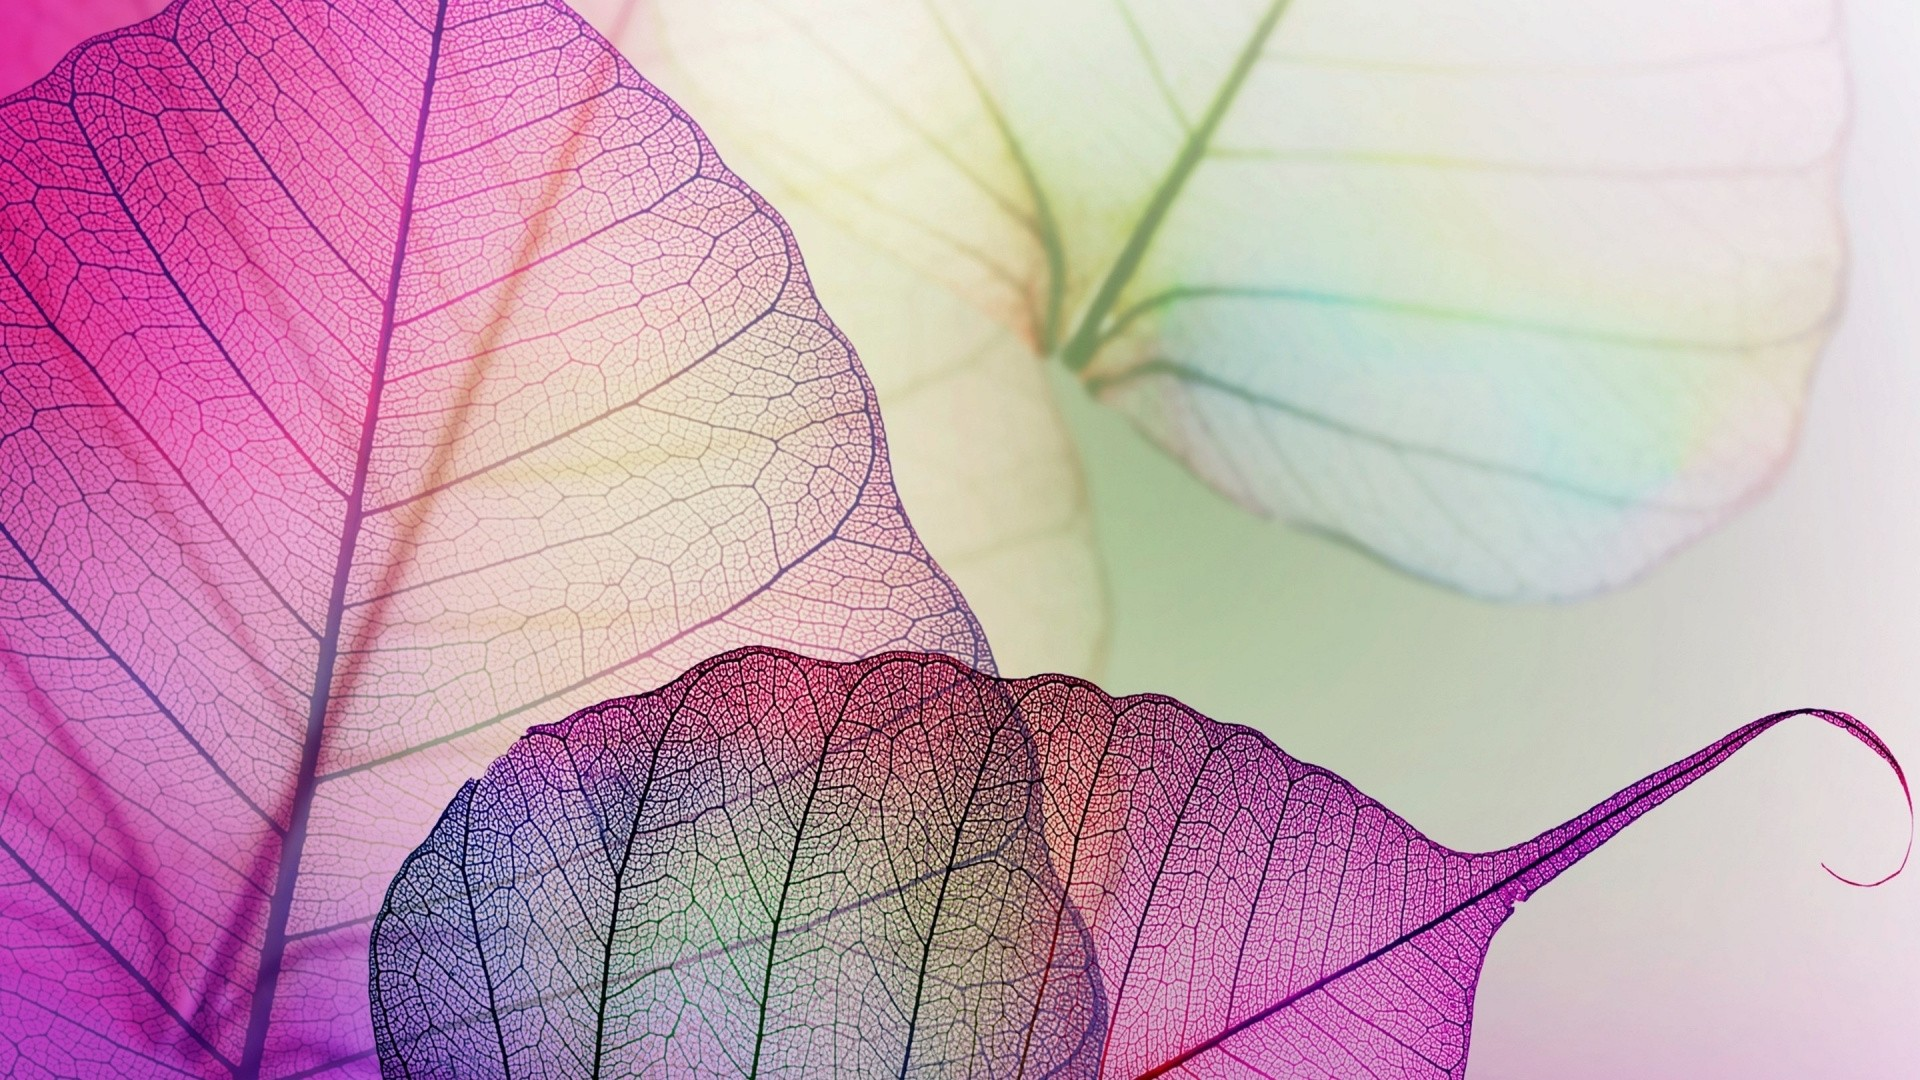 Leaf Wallpaper theme